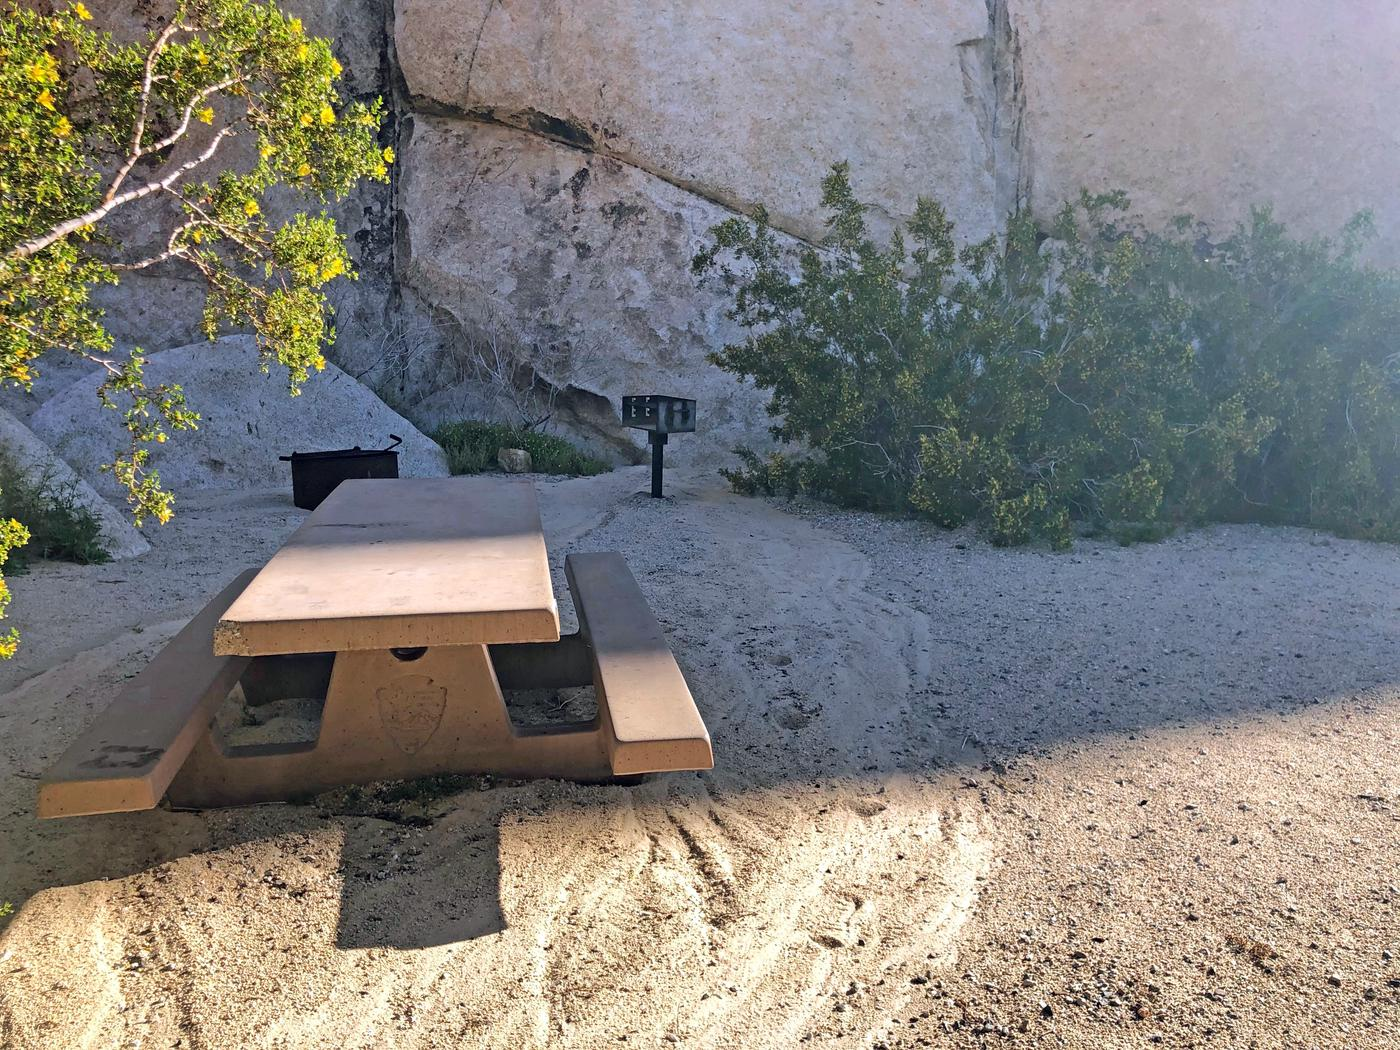 Campsite  with picnic table surrounded by boulders and green plants. Campsite.